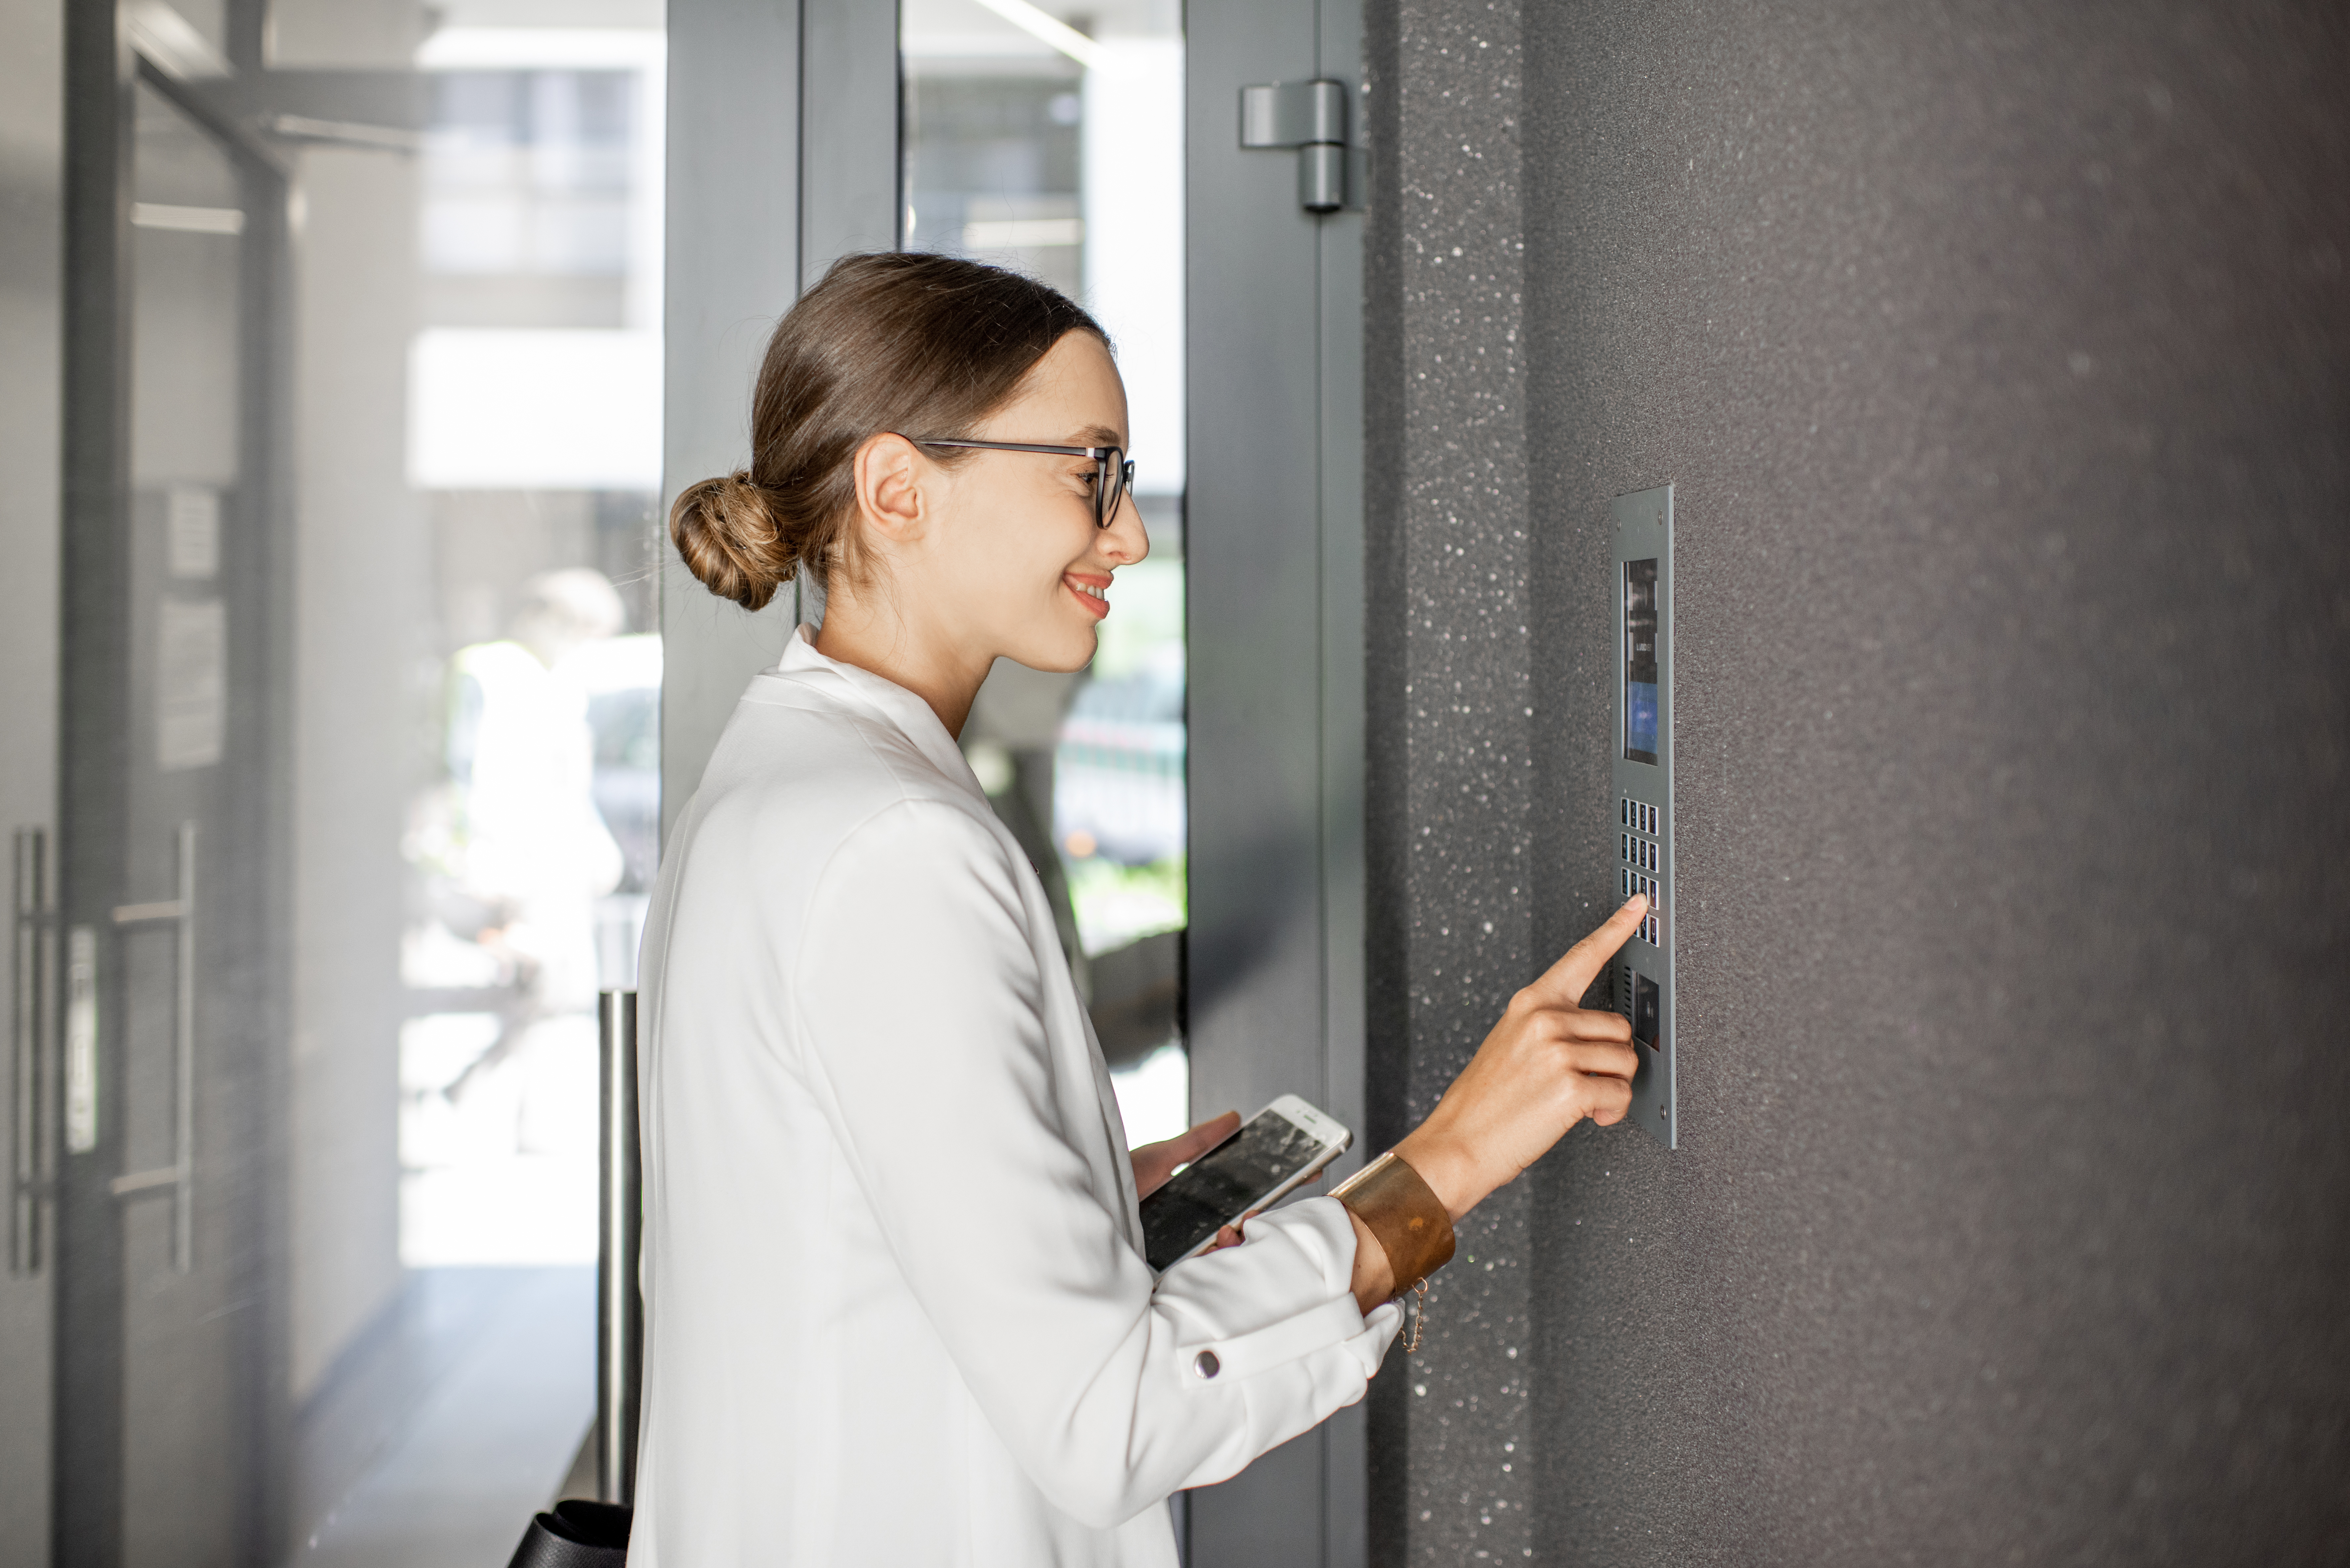 Business Access Control Planning: 6 Considerations